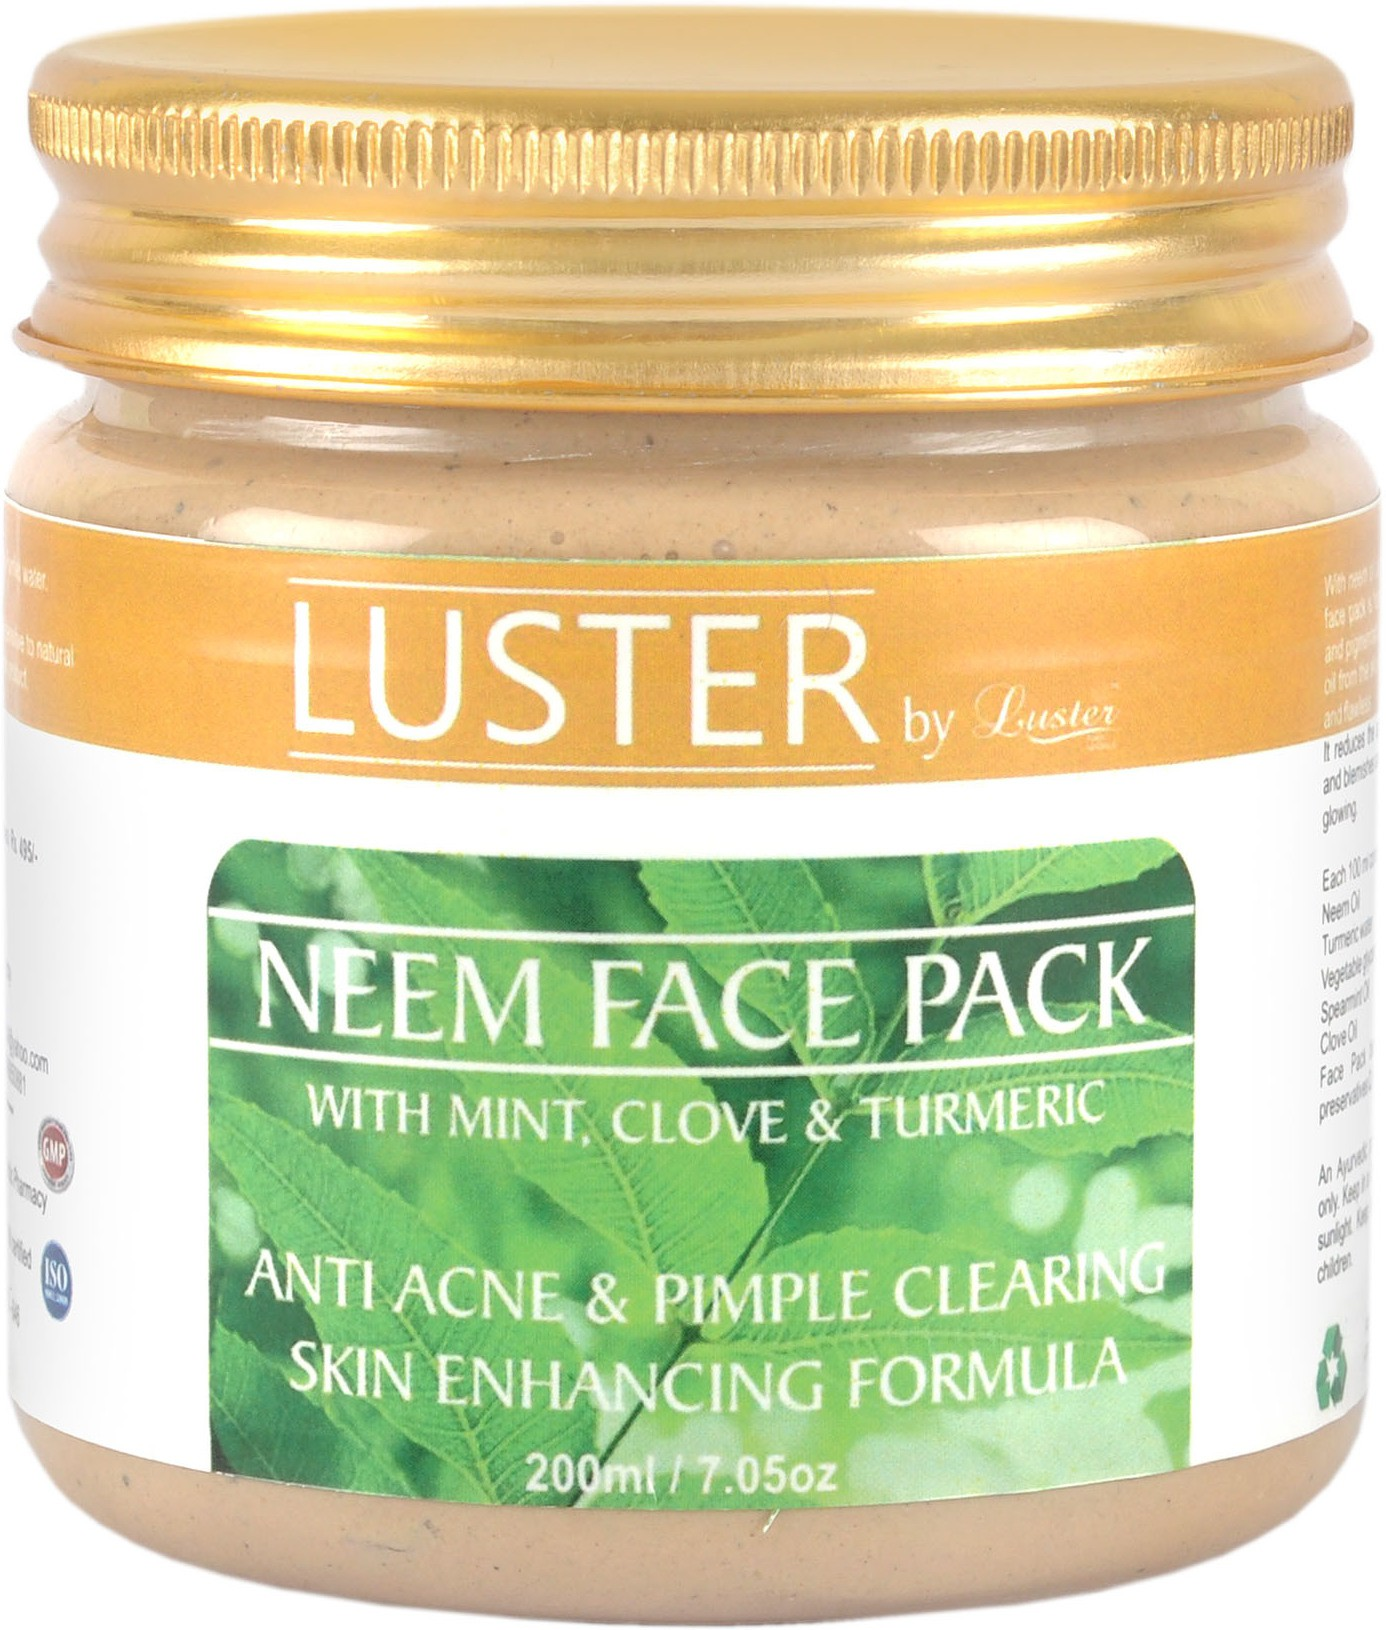 Luster Luster Neem Face Pack For Acne & Pimple Clearing (Small)(200 ml)